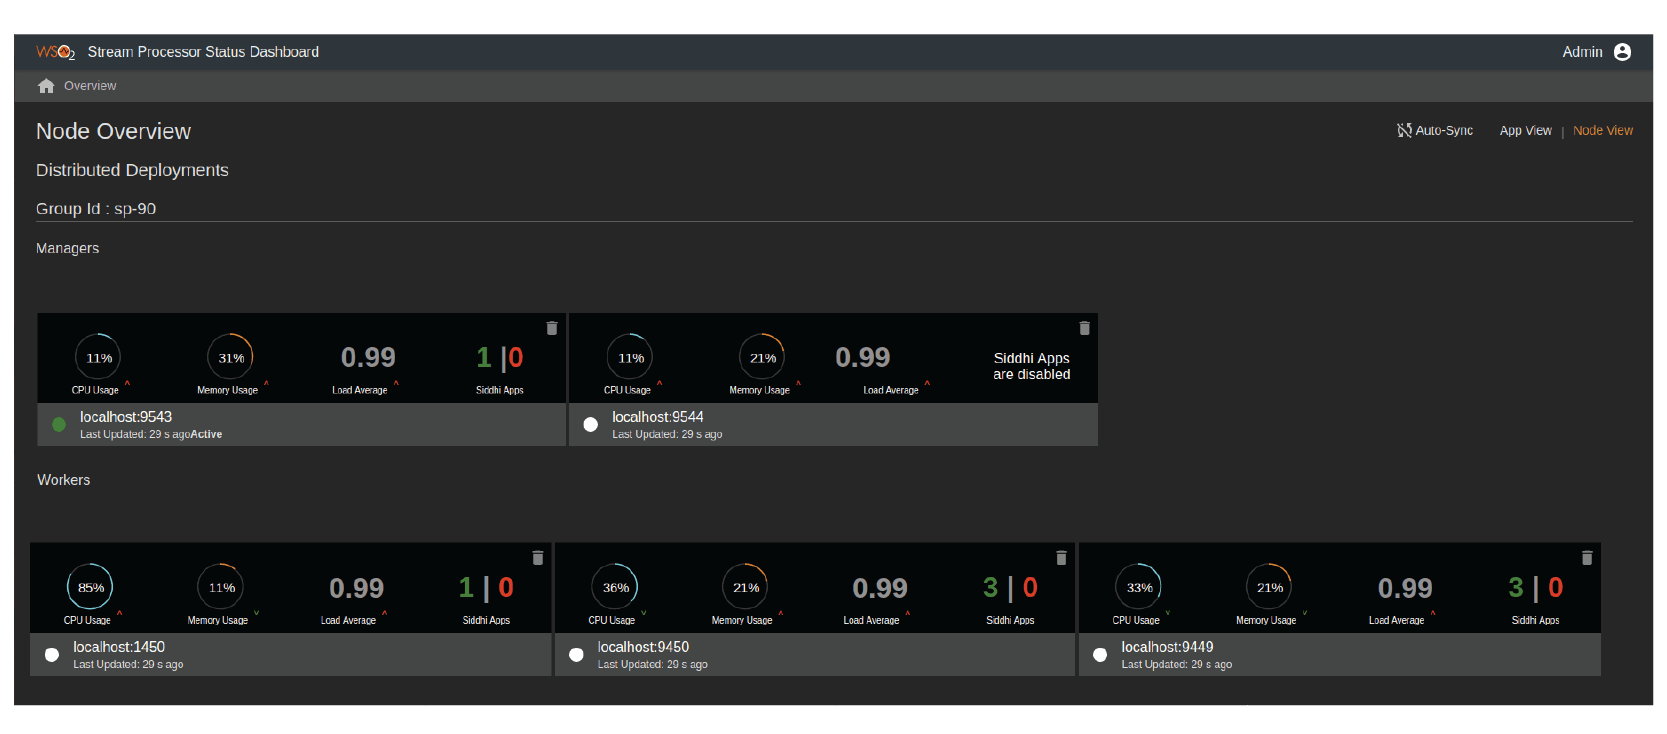 WSO2 Stream Processor Status Dashboard showing the status of the distributed cluster